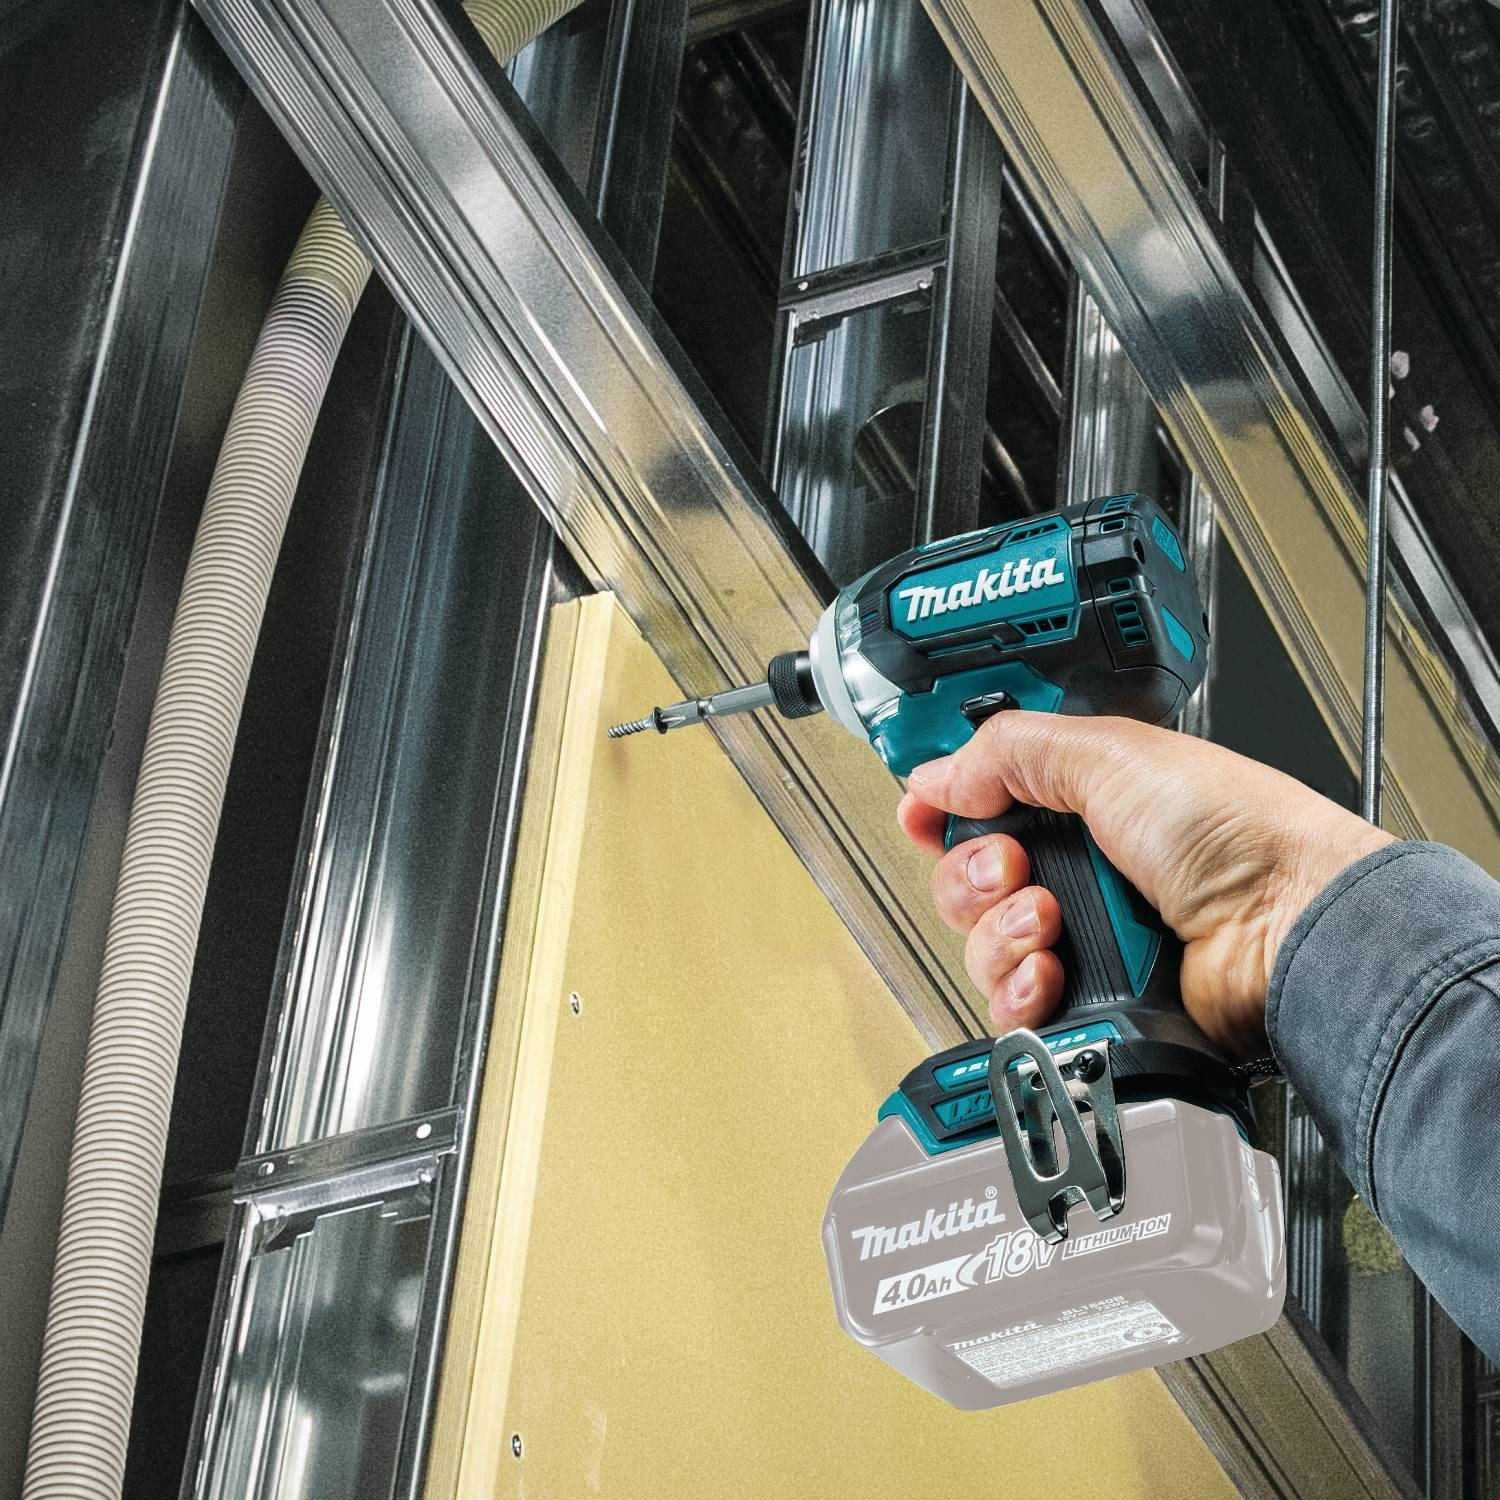 Image of Makita XDT12Z Cordless Impact Driver Tightening a screw